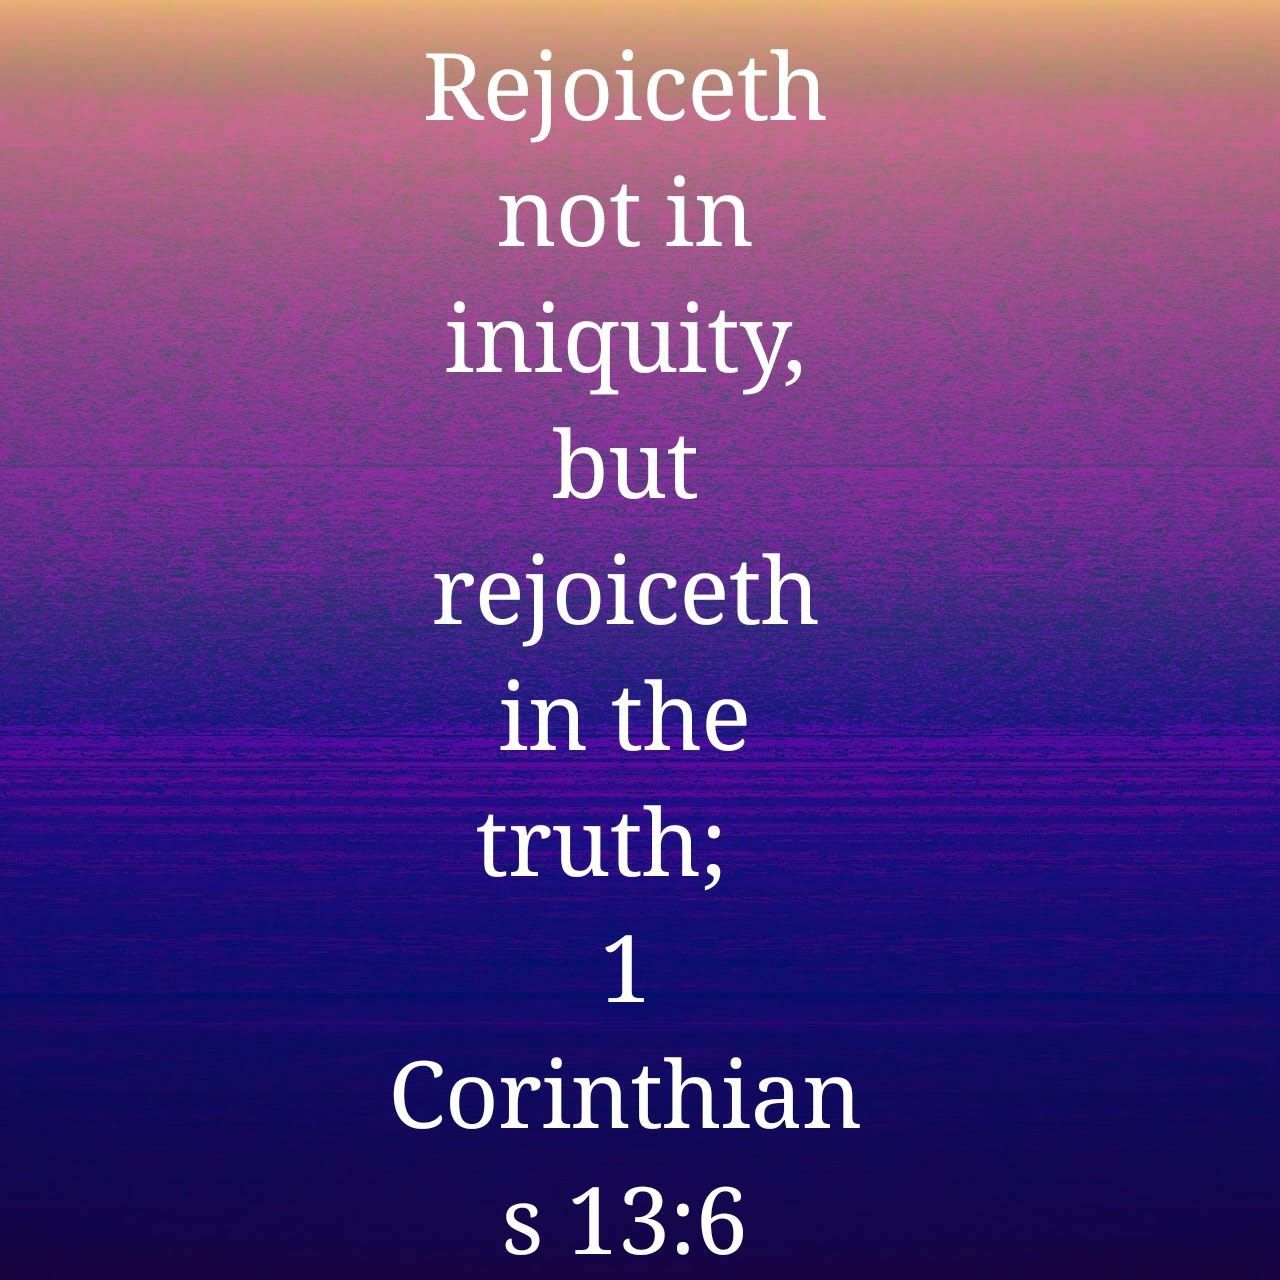 Pin By Lisa Mabry On Let S Talk About Jesus In 2020 Let Them Talk Truth Let It Be